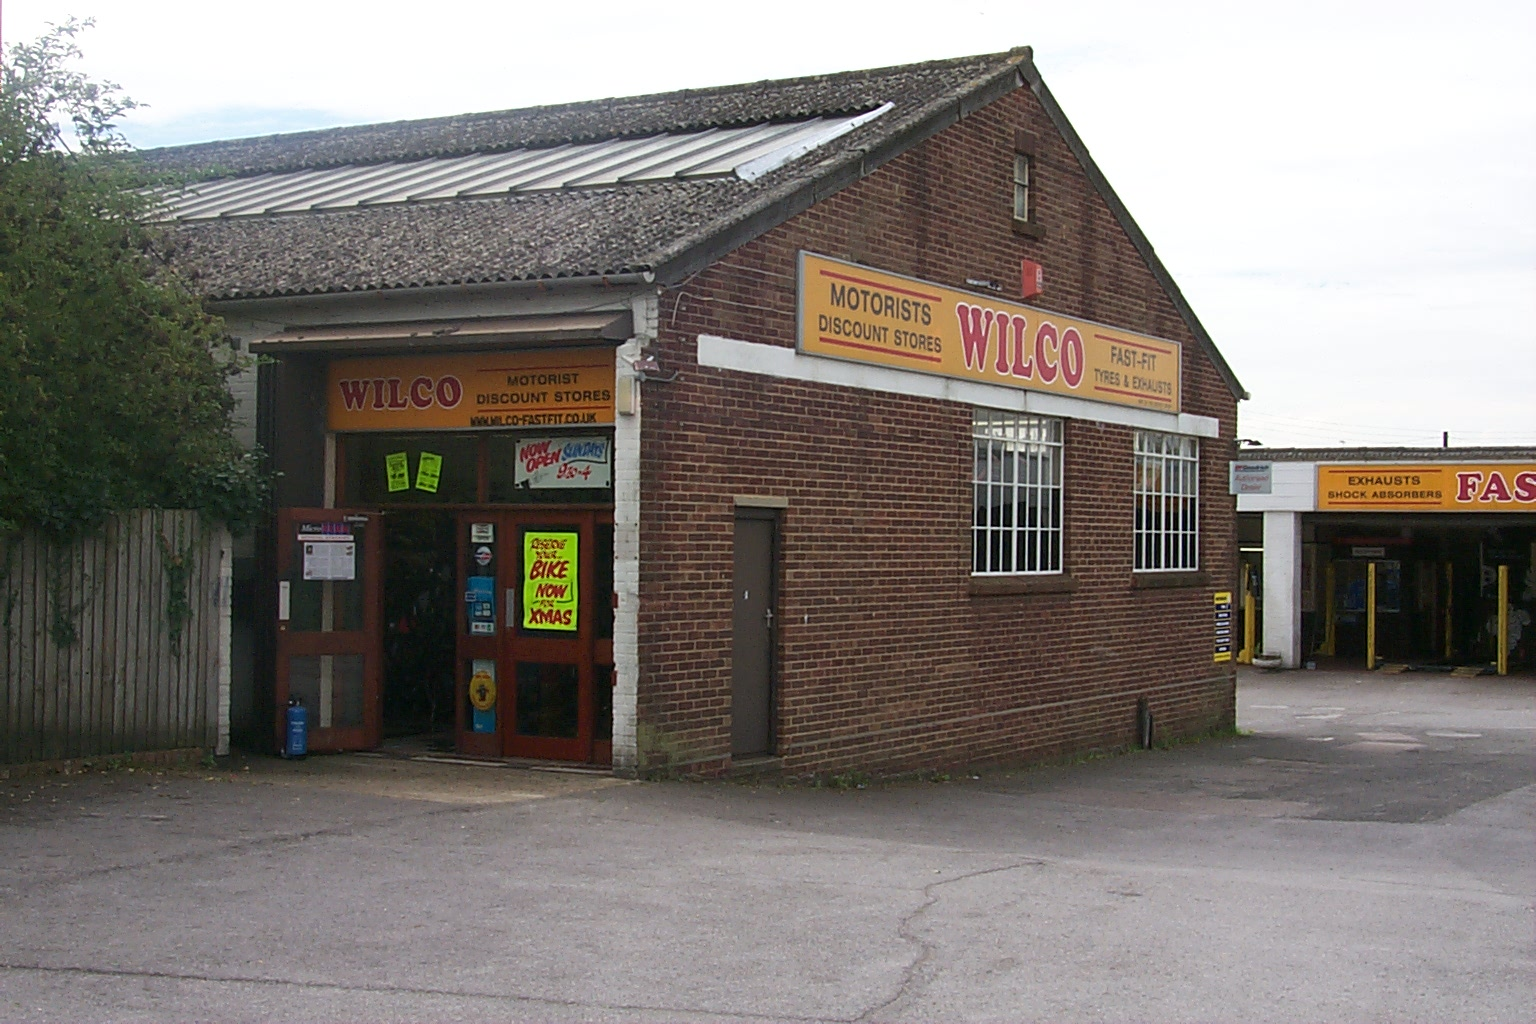 Wilco Motor Spares - Watton, Norfolk IP25 6JB - 01953 882902 | ShowMeLocal.com